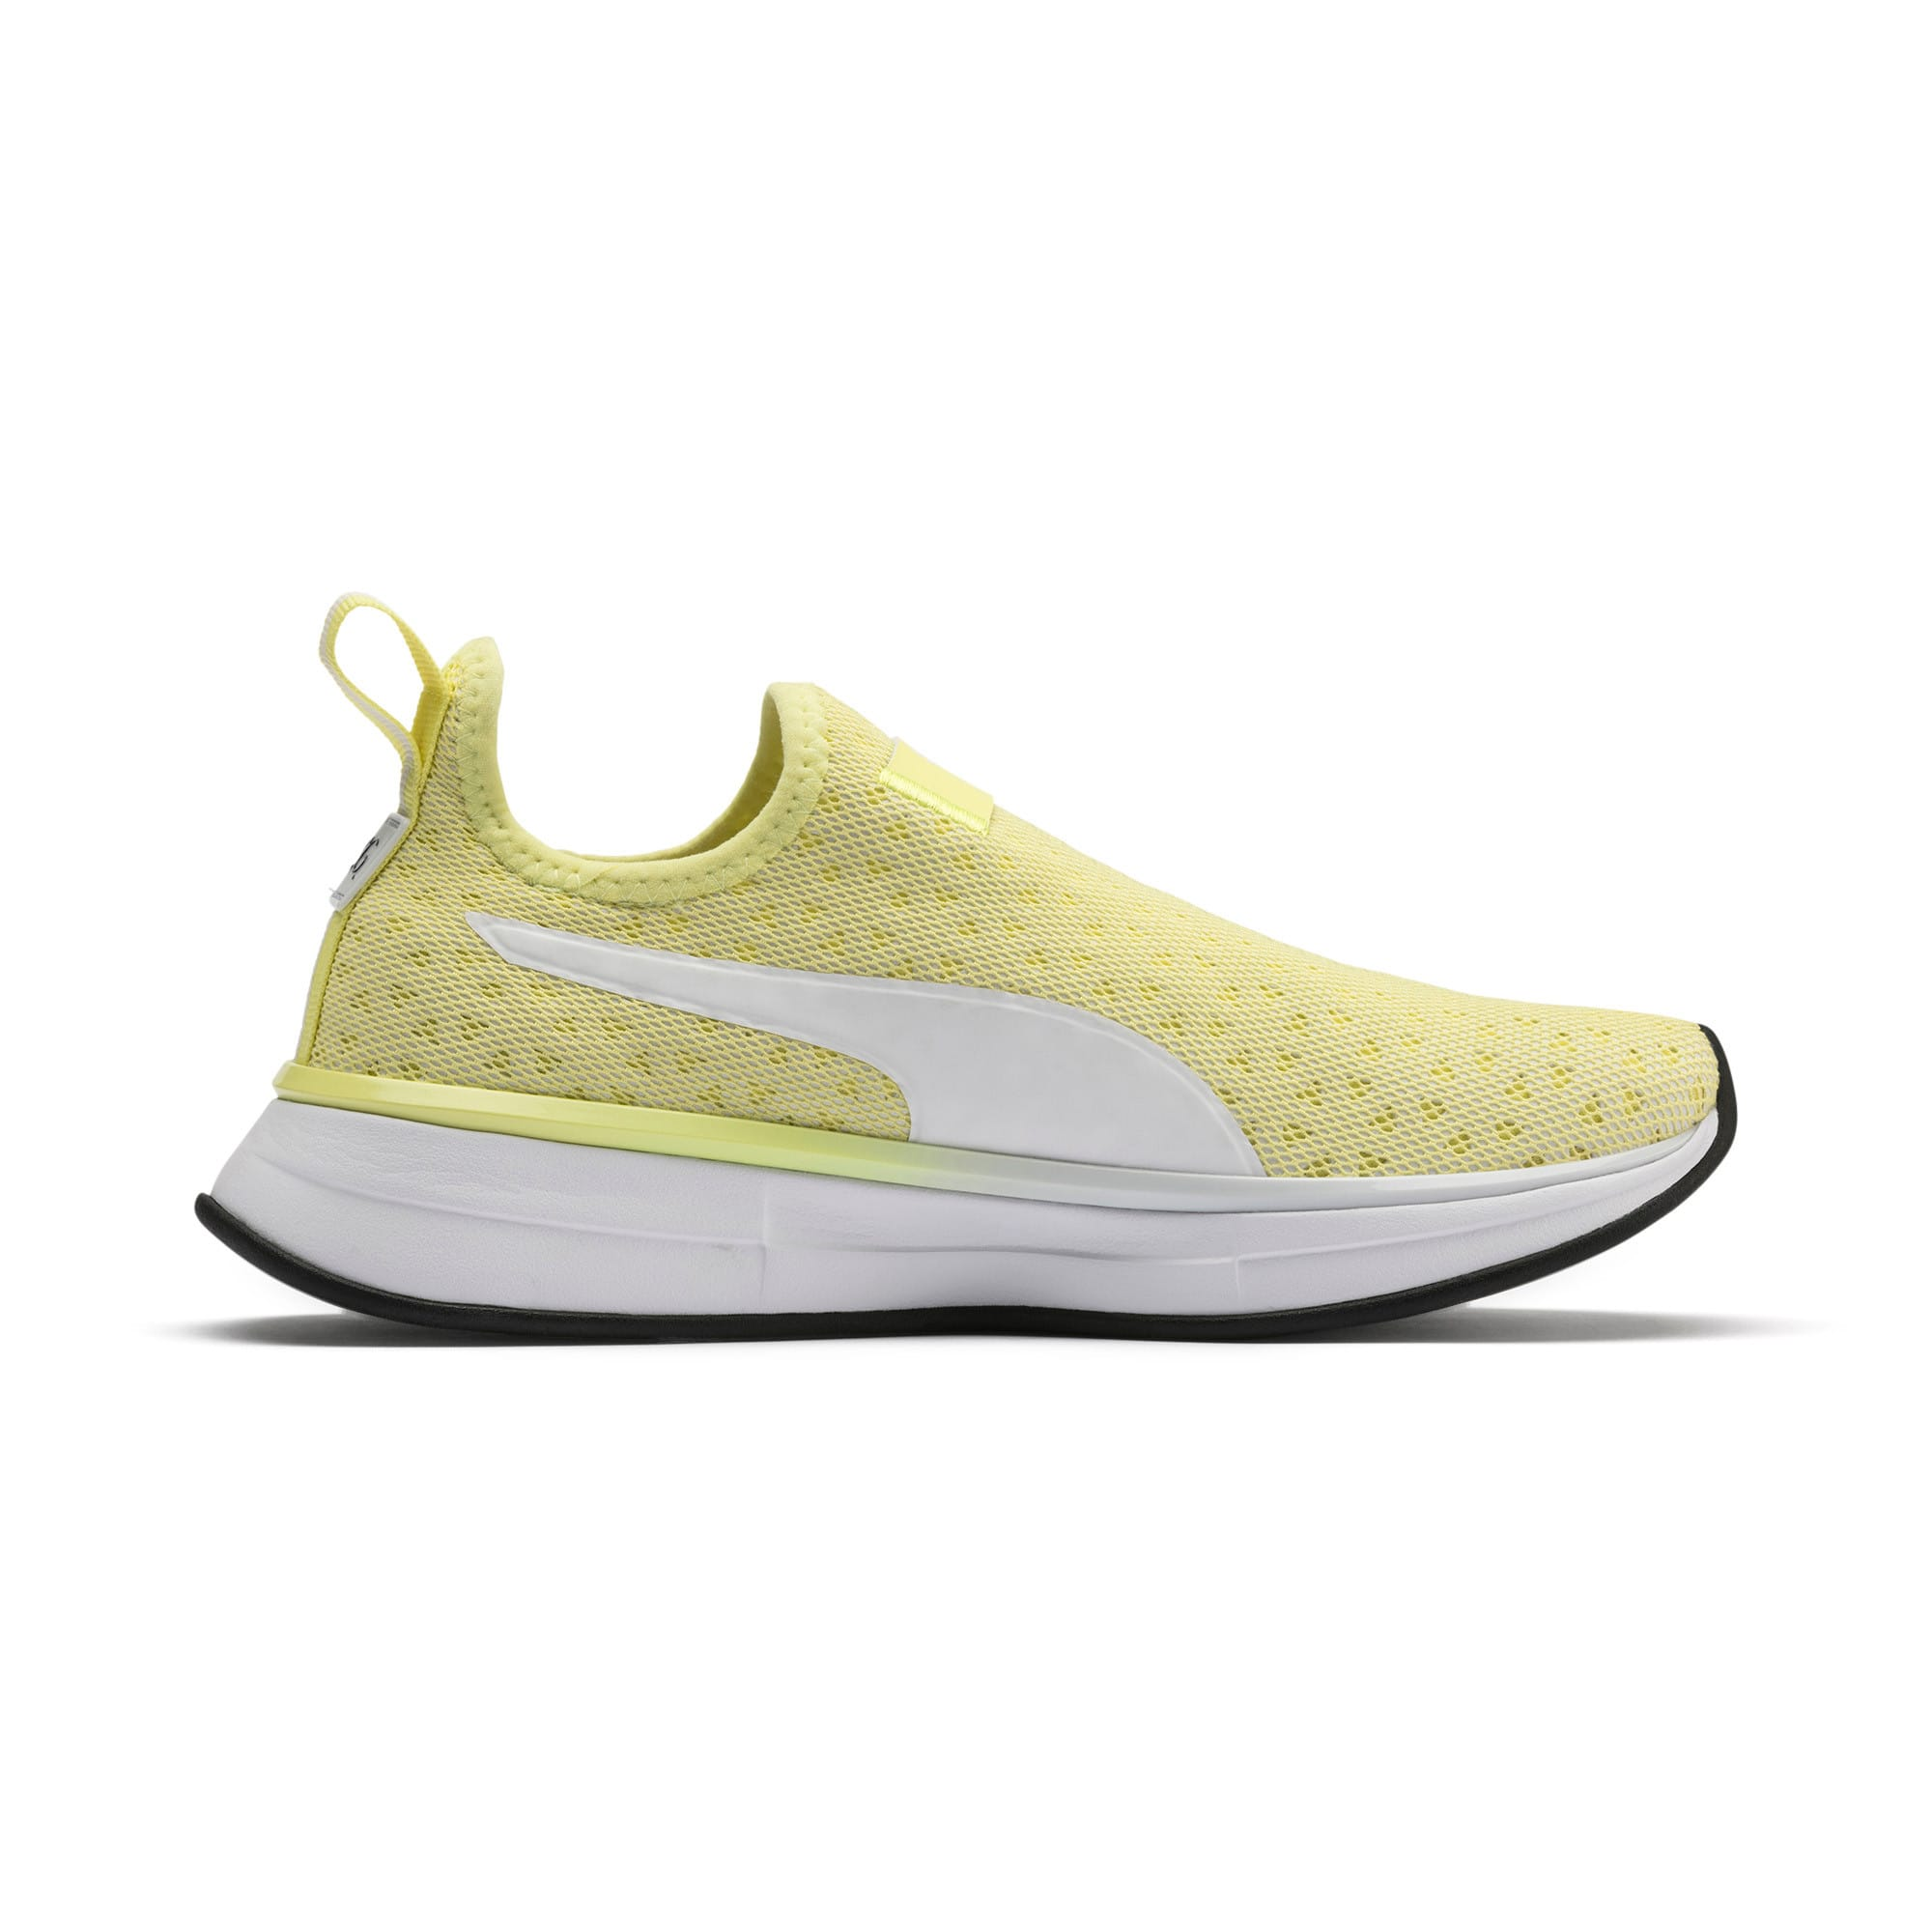 Thumbnail 6 of SG Slip-on Bright Women's Training Shoes, YELLOW-Puma White-Puma Black, medium